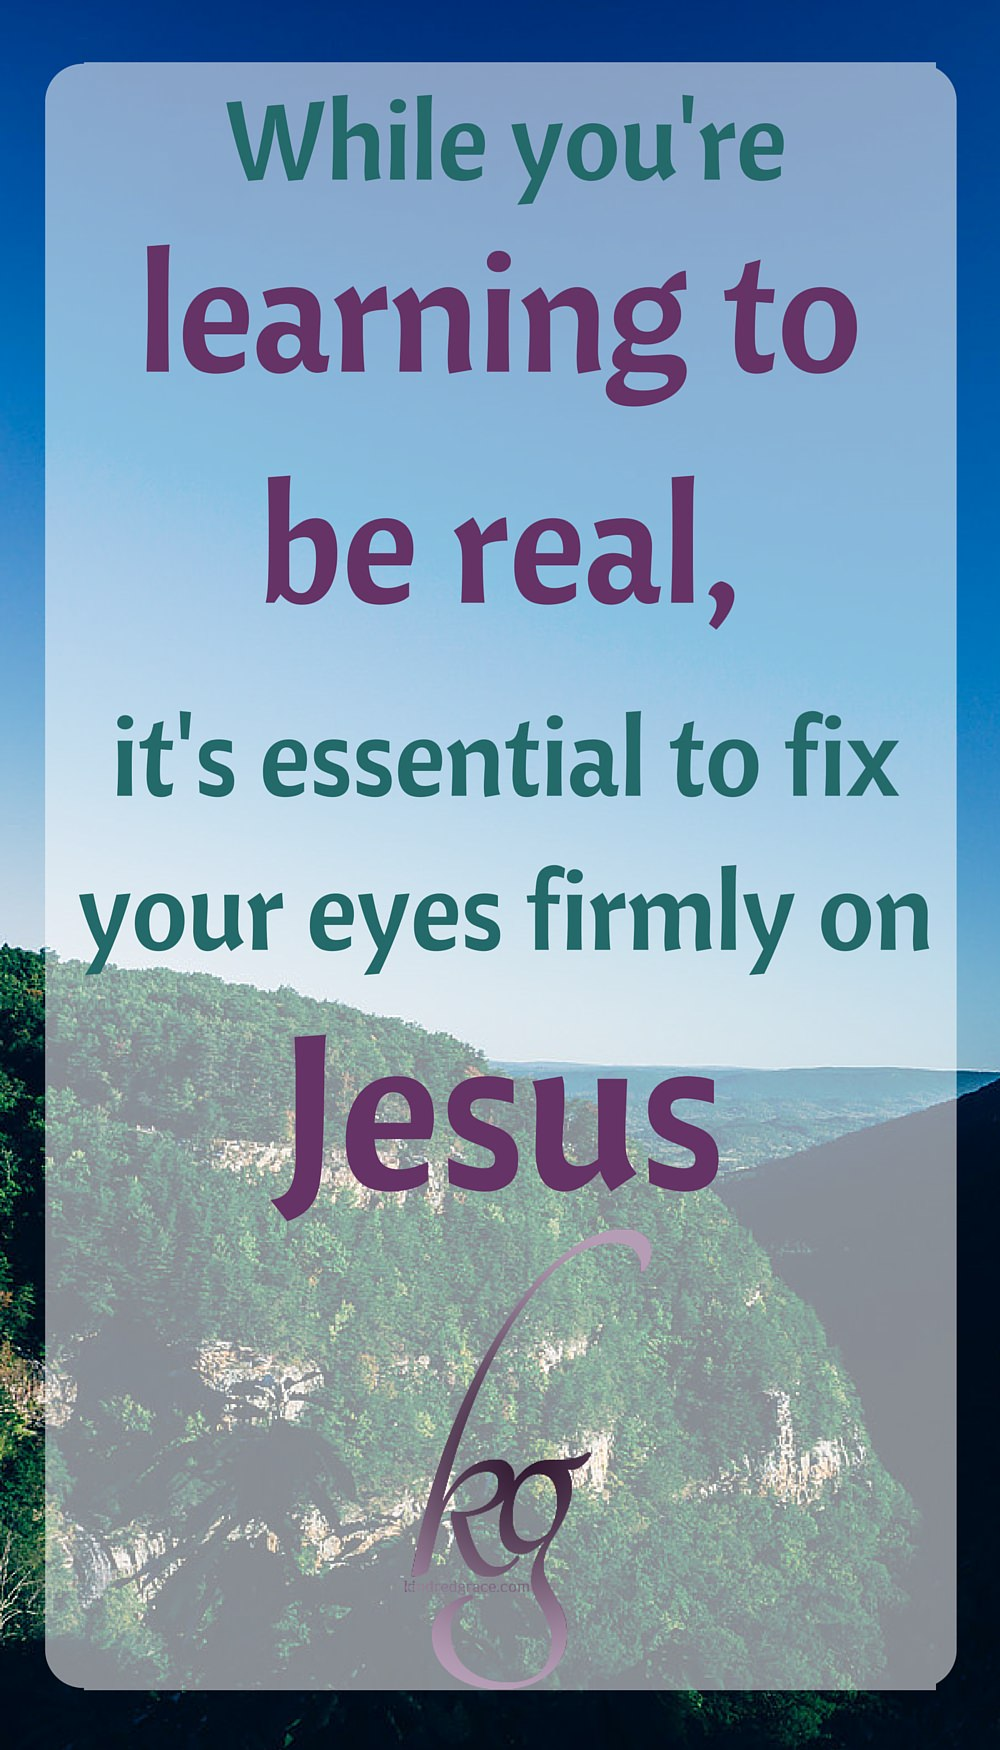 It was only when I fixed my eyes far ahead, on the middle of the road, that I was able to drive smoothly and confidently. While you're learning to be real, it's essential to fix your eyes firmly on Jesus. via @KindredGrace